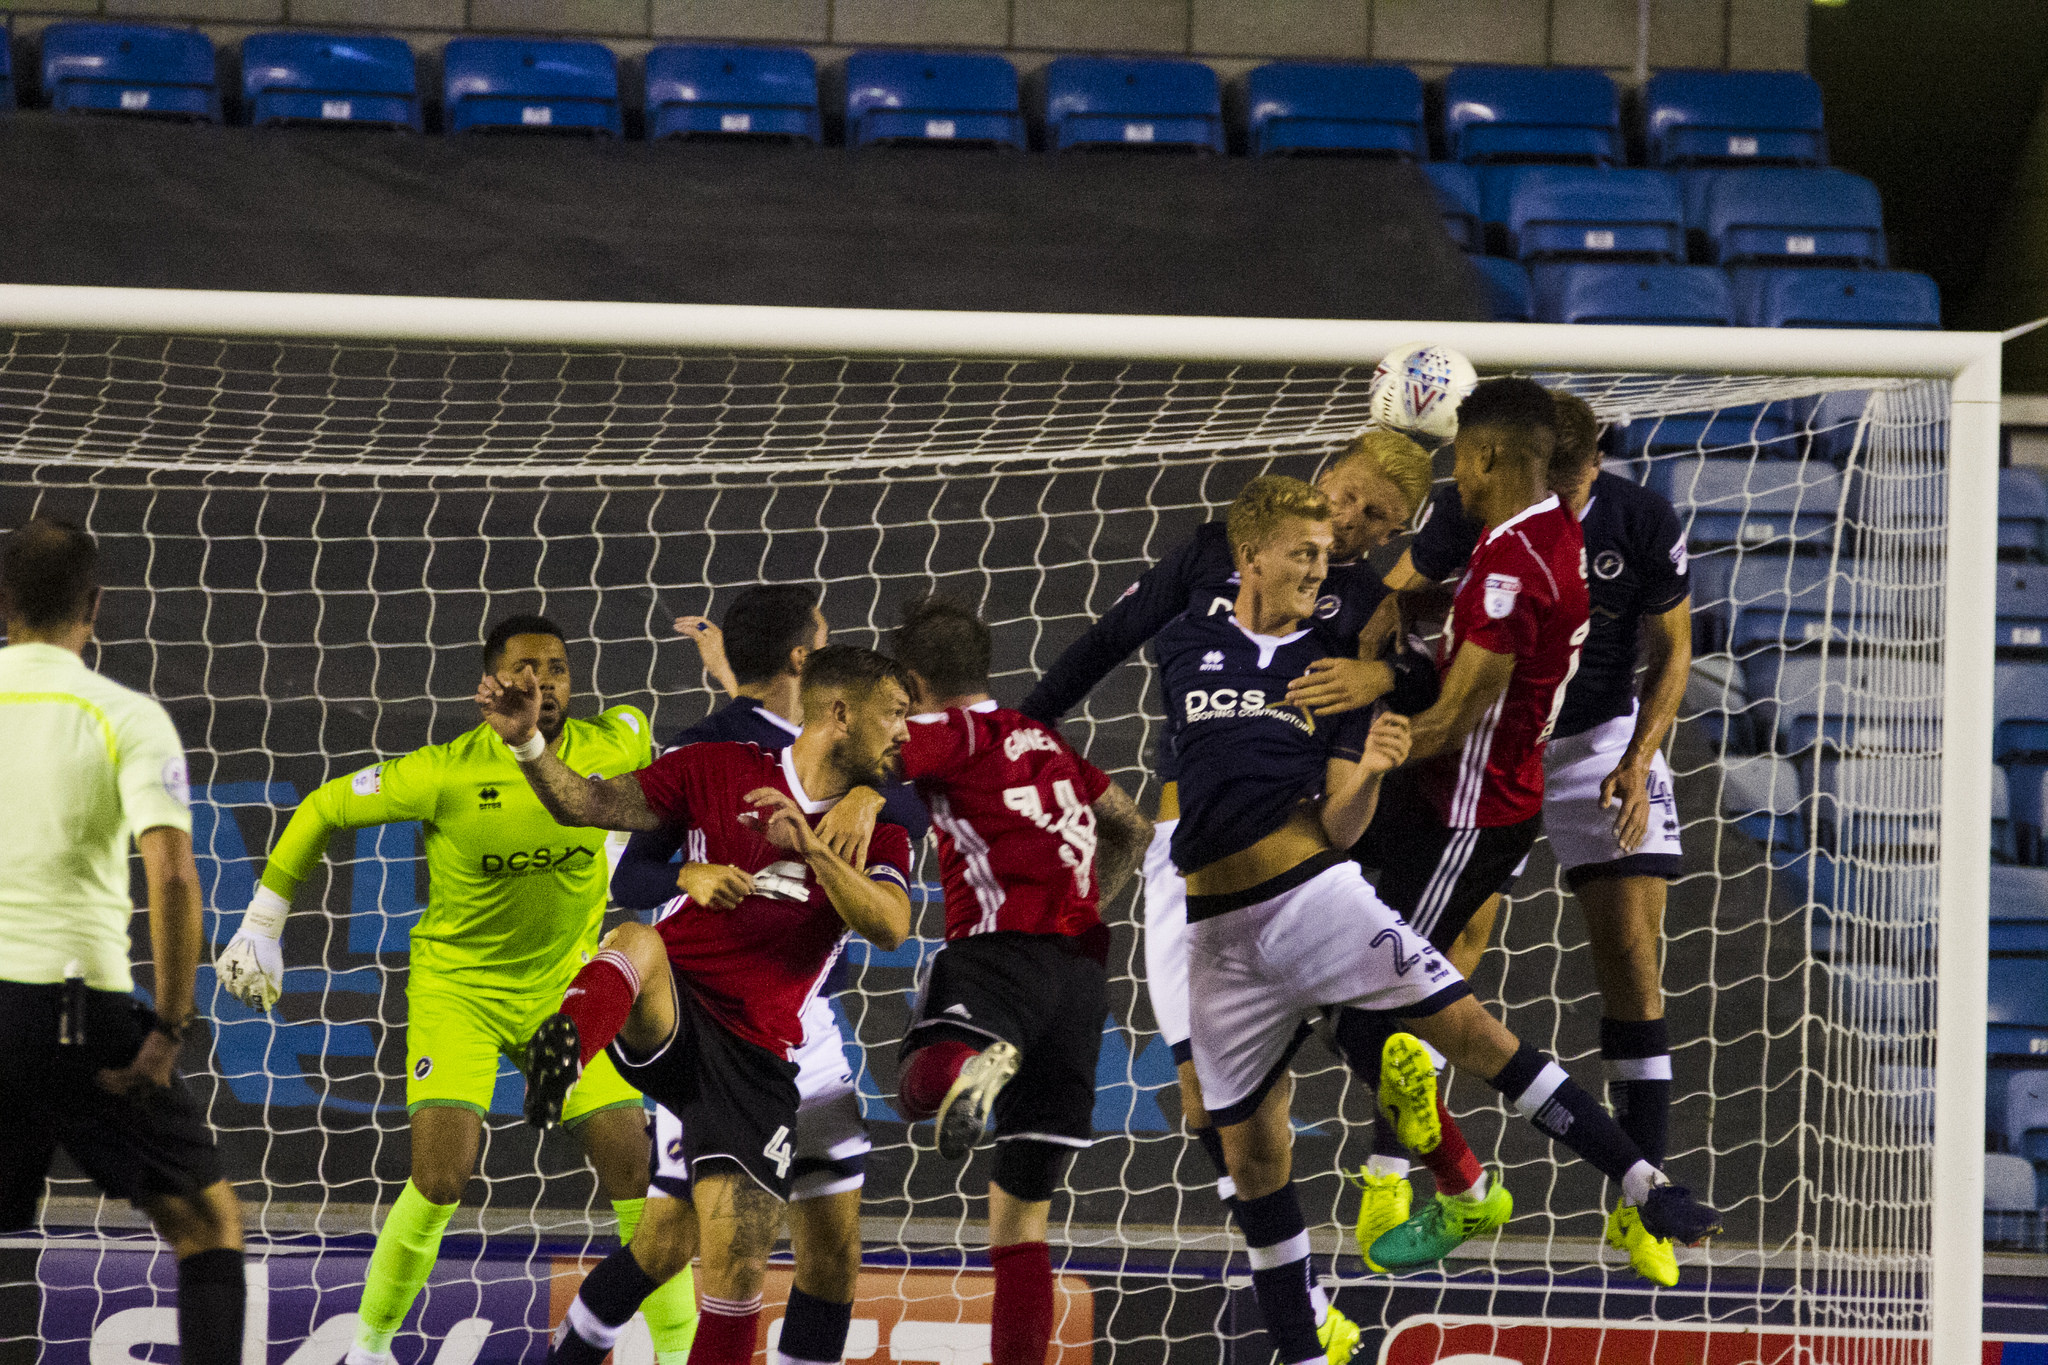 Millwall drew 2-2 at Loftus Road with Queens Park Rangers